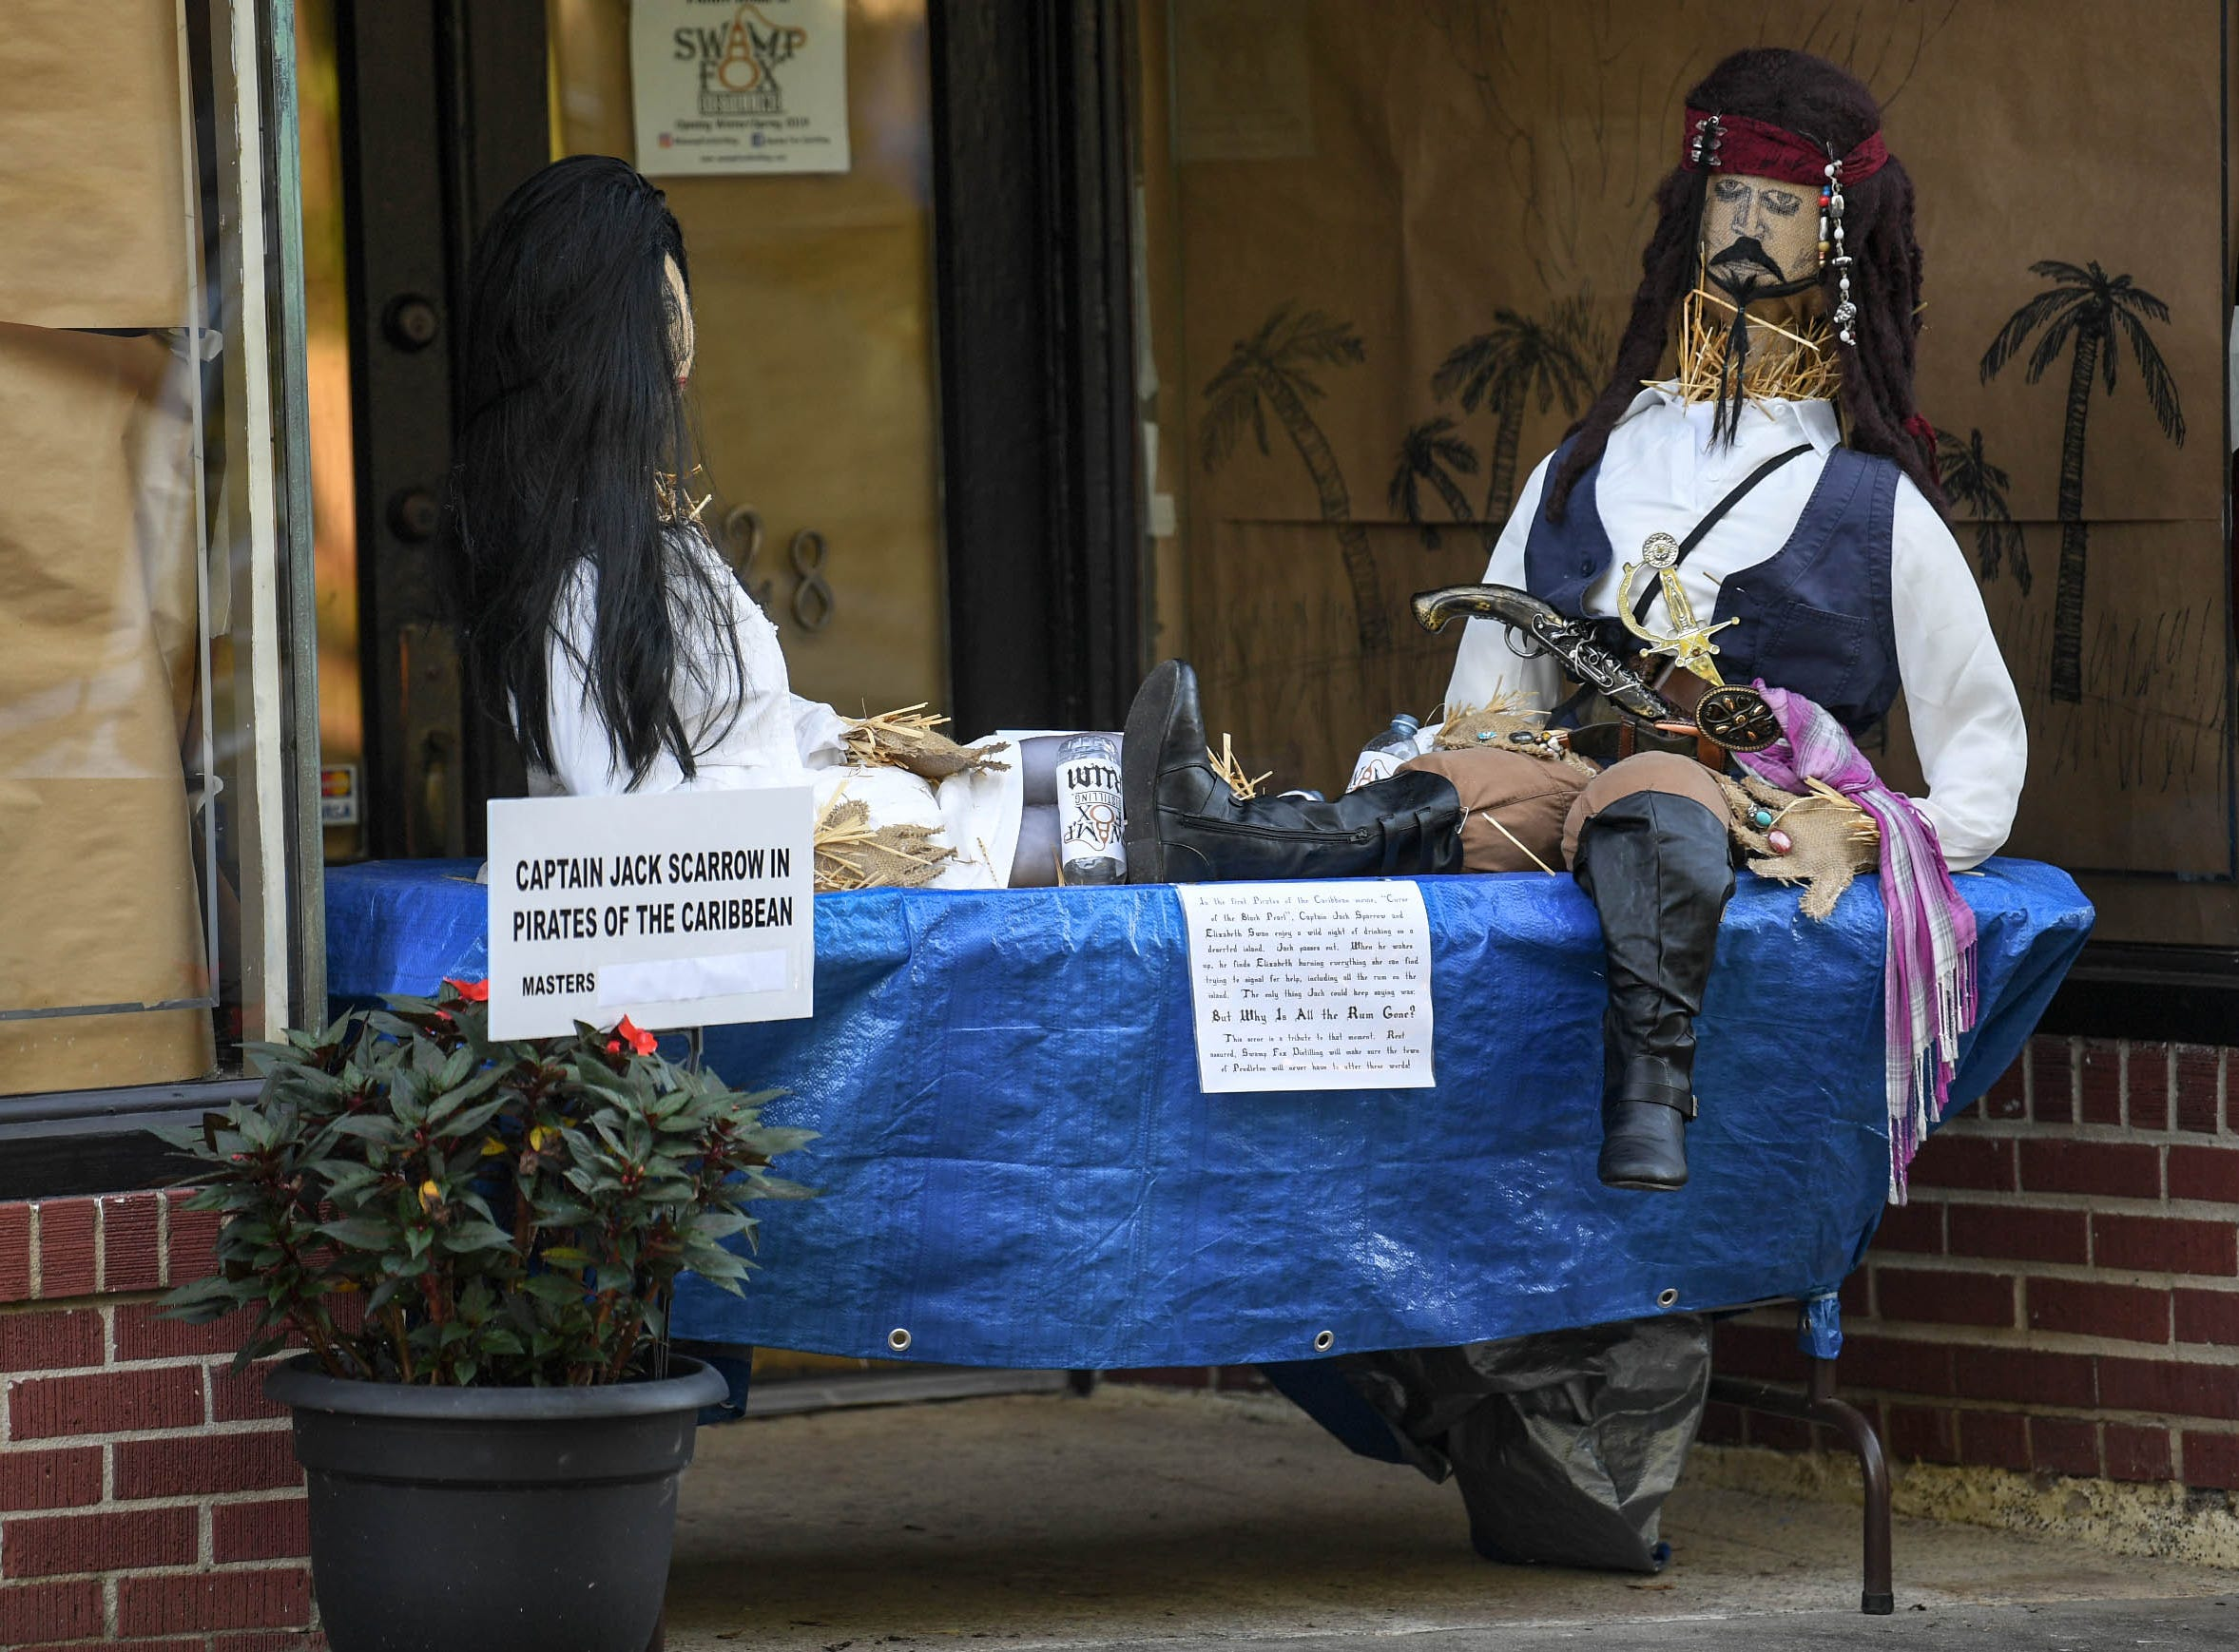 """Scarecrows on display, """"Captain Jack Scarrow in Pirates of the Caribbean,"""" in front of the Lazy Islander is one of many displays in The Pendleton Scarecrow Contest leading up to the 20th Fall Harvest Festival in the village green Saturday, October 6 from 10 a.m. to 5 p.m. The annual contest in Pendleton for businesses, individuals, groups, organizations and churches who create fun not scary Scarecrows. People driving around the downtown square can see different theme scarecrows."""